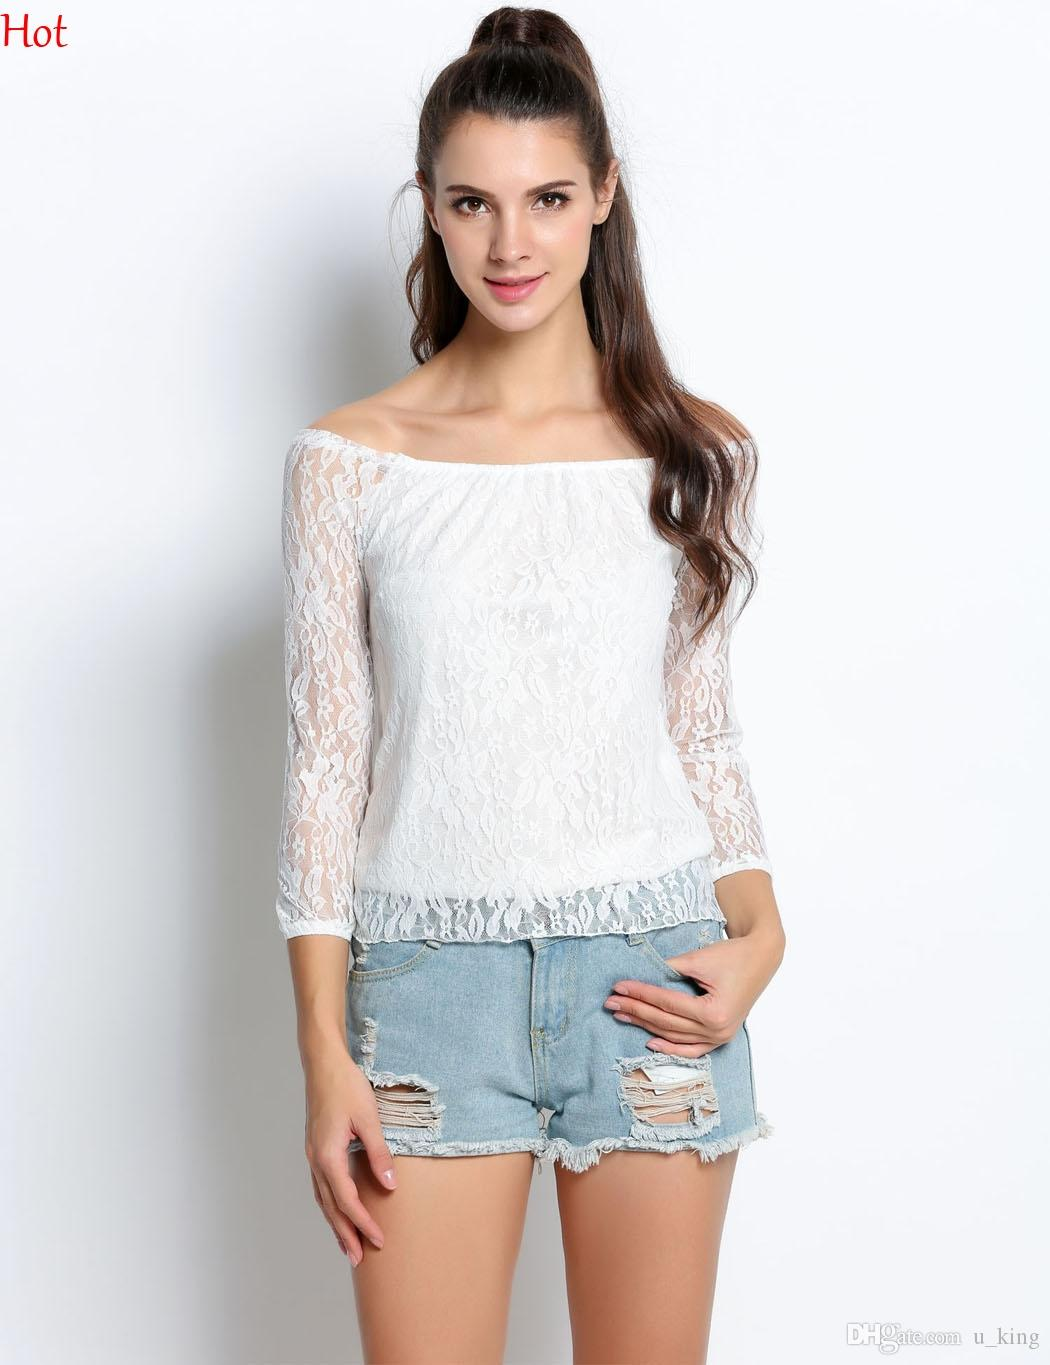 f4deefa49cc 2019 Hot Off Shoulder White Blouse Lace 3/4 Sleeve Spring Women Tops New  Fashion Korean Crochet Hollow Out Ladies Shirt Party Blouses SV001984 From  U_king, ...